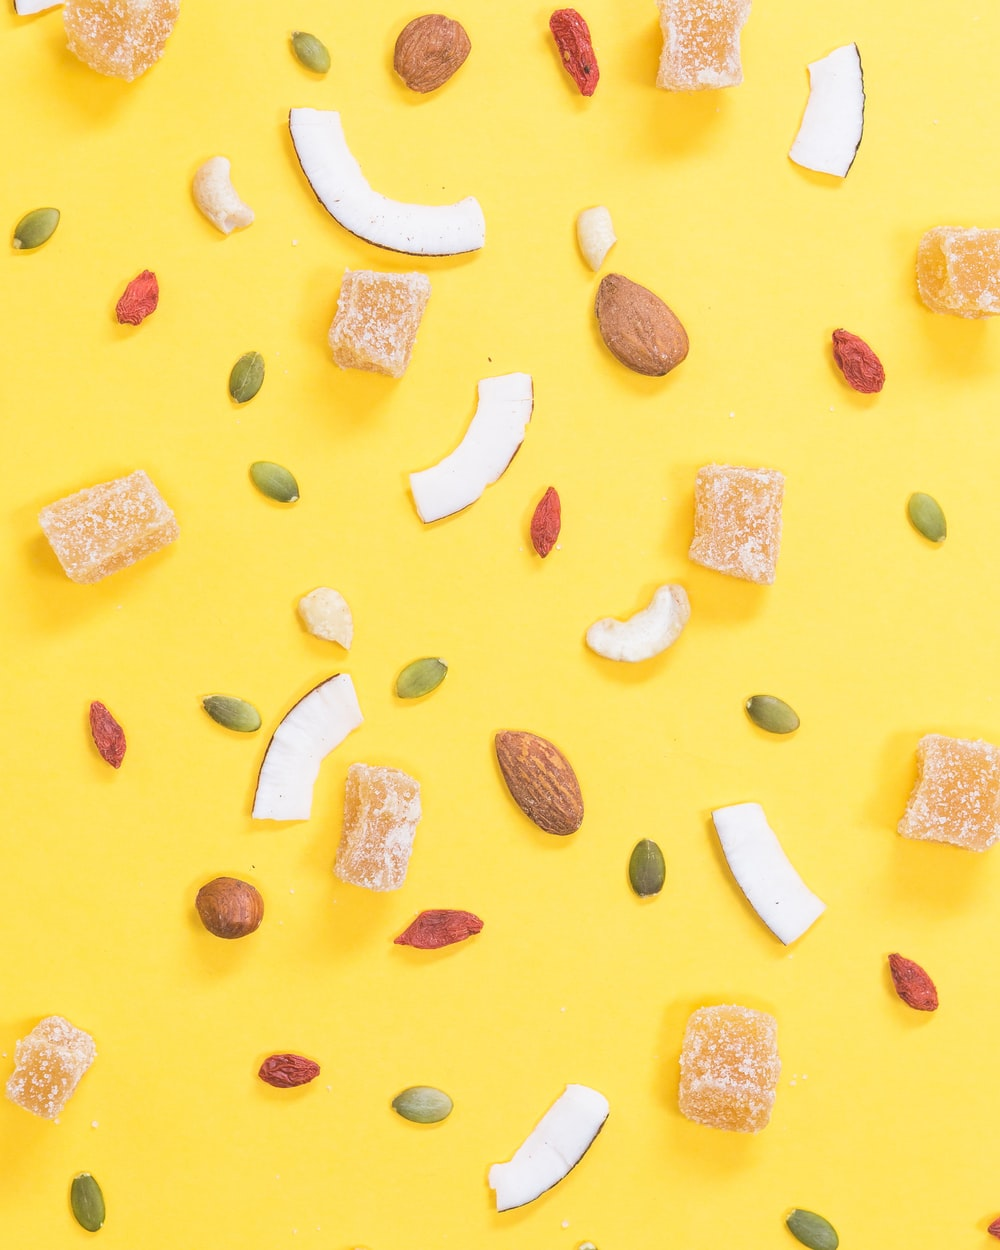 nuts and beans on yellow surface